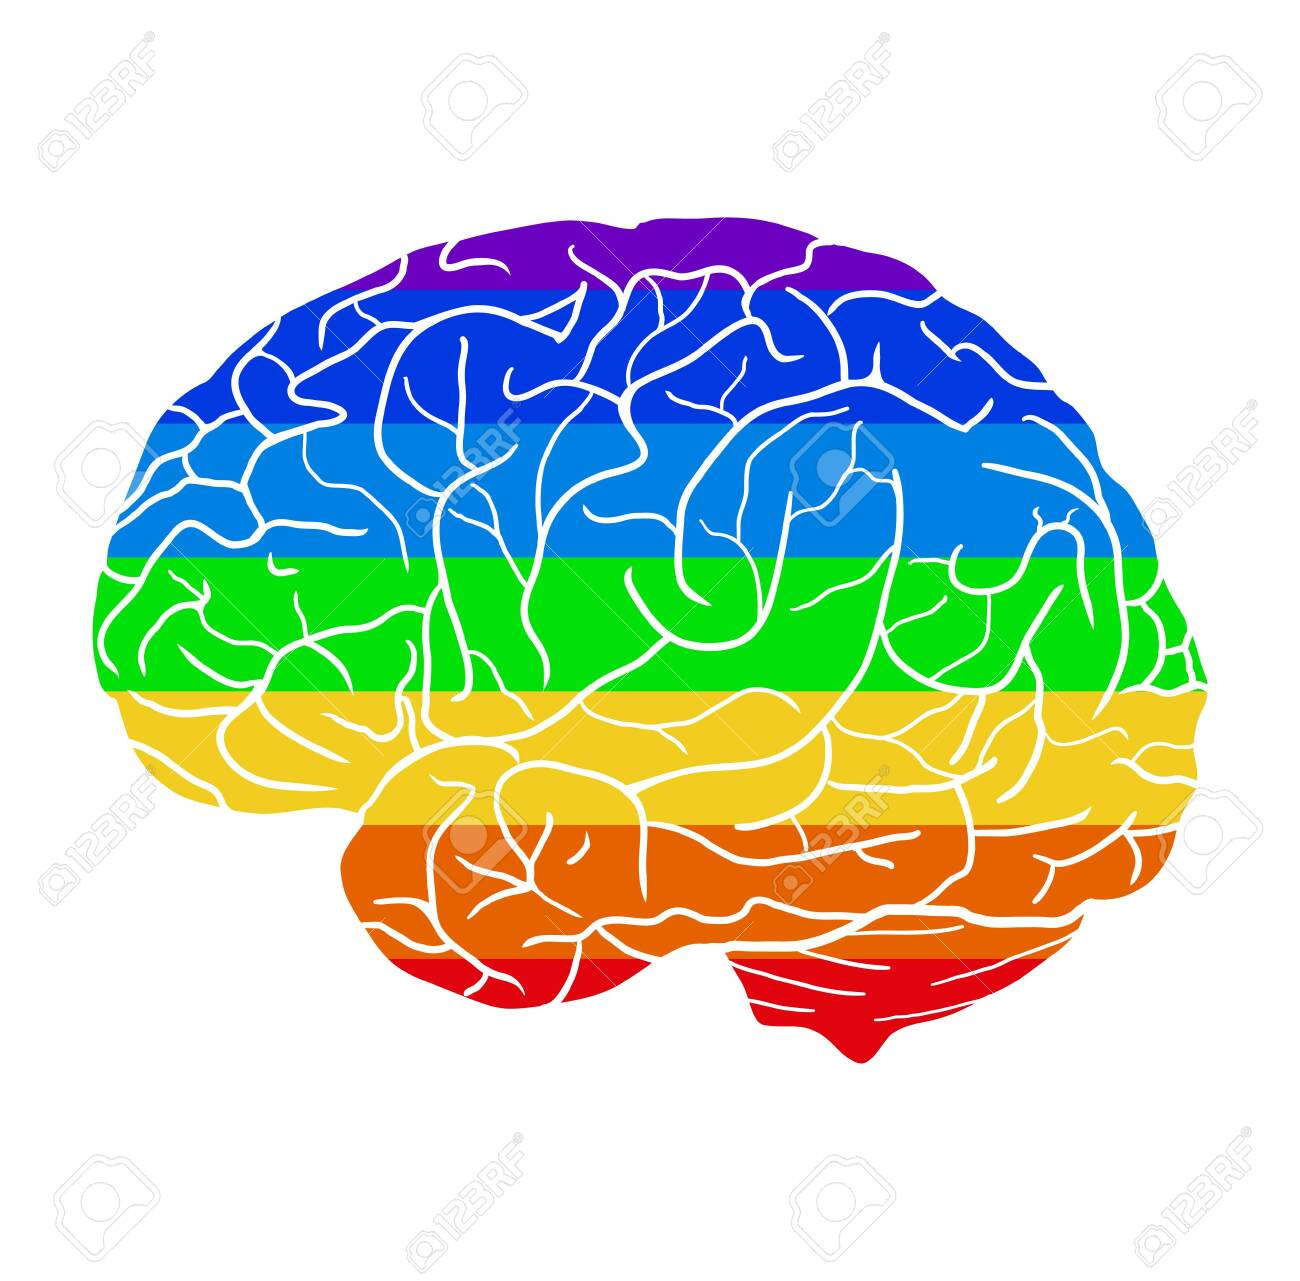 Human brain with a rainbow background. Different love. Month of pride to be yourself. Creativity and human development. Vector element, icons and your design. - 150369998